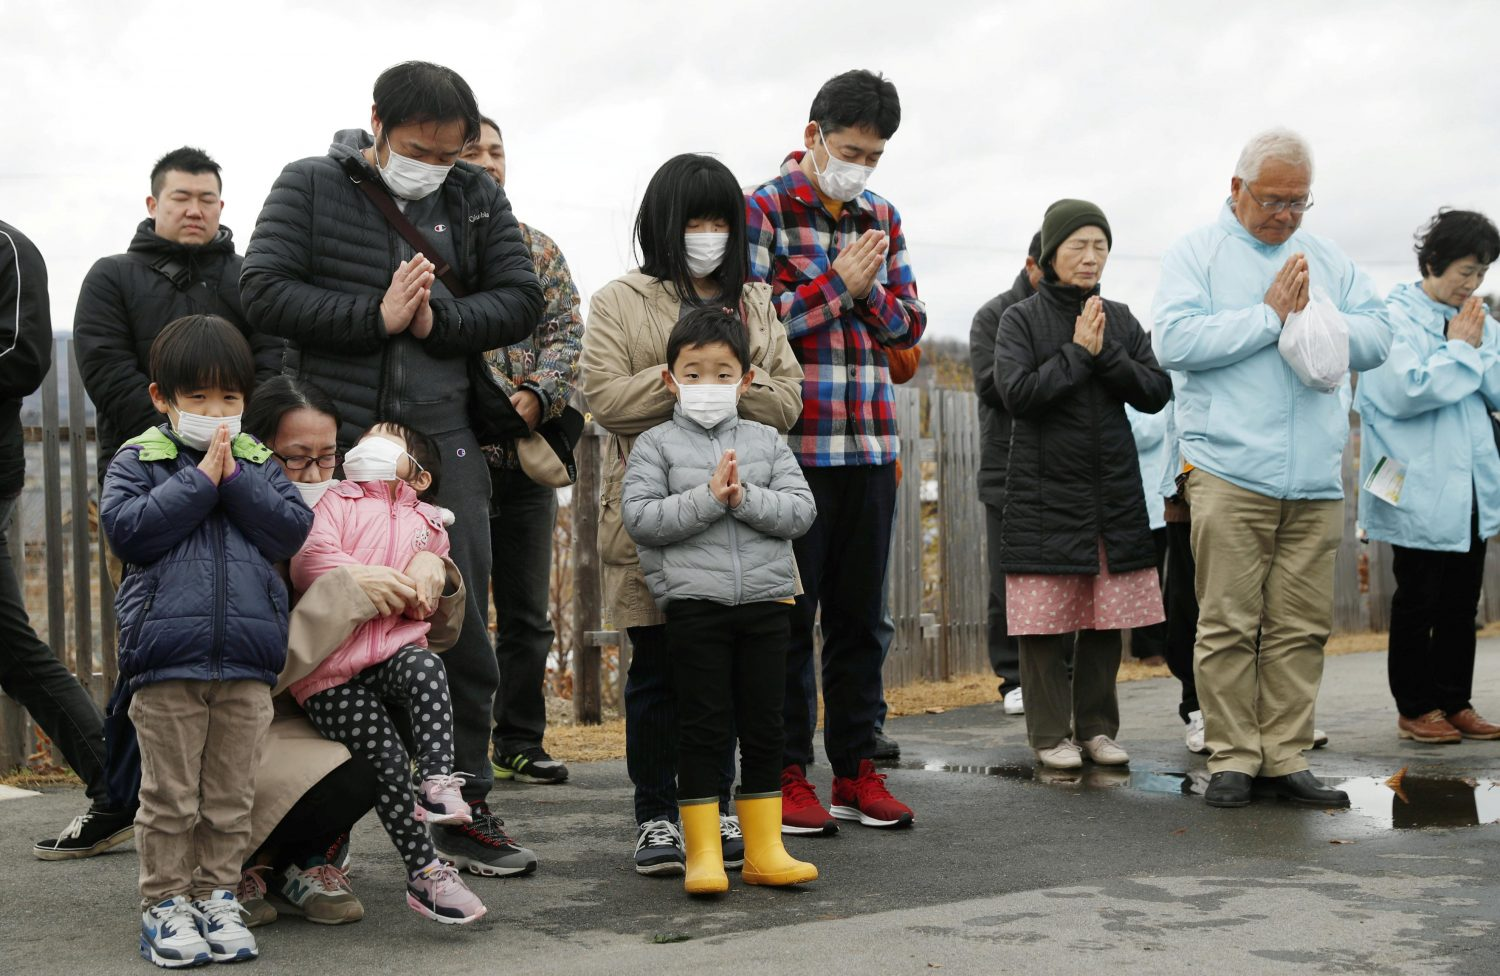 People pray to mourn victims at 2:46 PM (05:46 GMT), the time when the magnitude 9.0 earthquake struck off Japan's coast in 2011, in Iwaki, Fukushima prefecture, Japan March 11, 2019, to mark the eighth year anniversary of the earthquake and tsunami that killed thousands and set off a nuclear crisis. Kyodo/via REUTERS